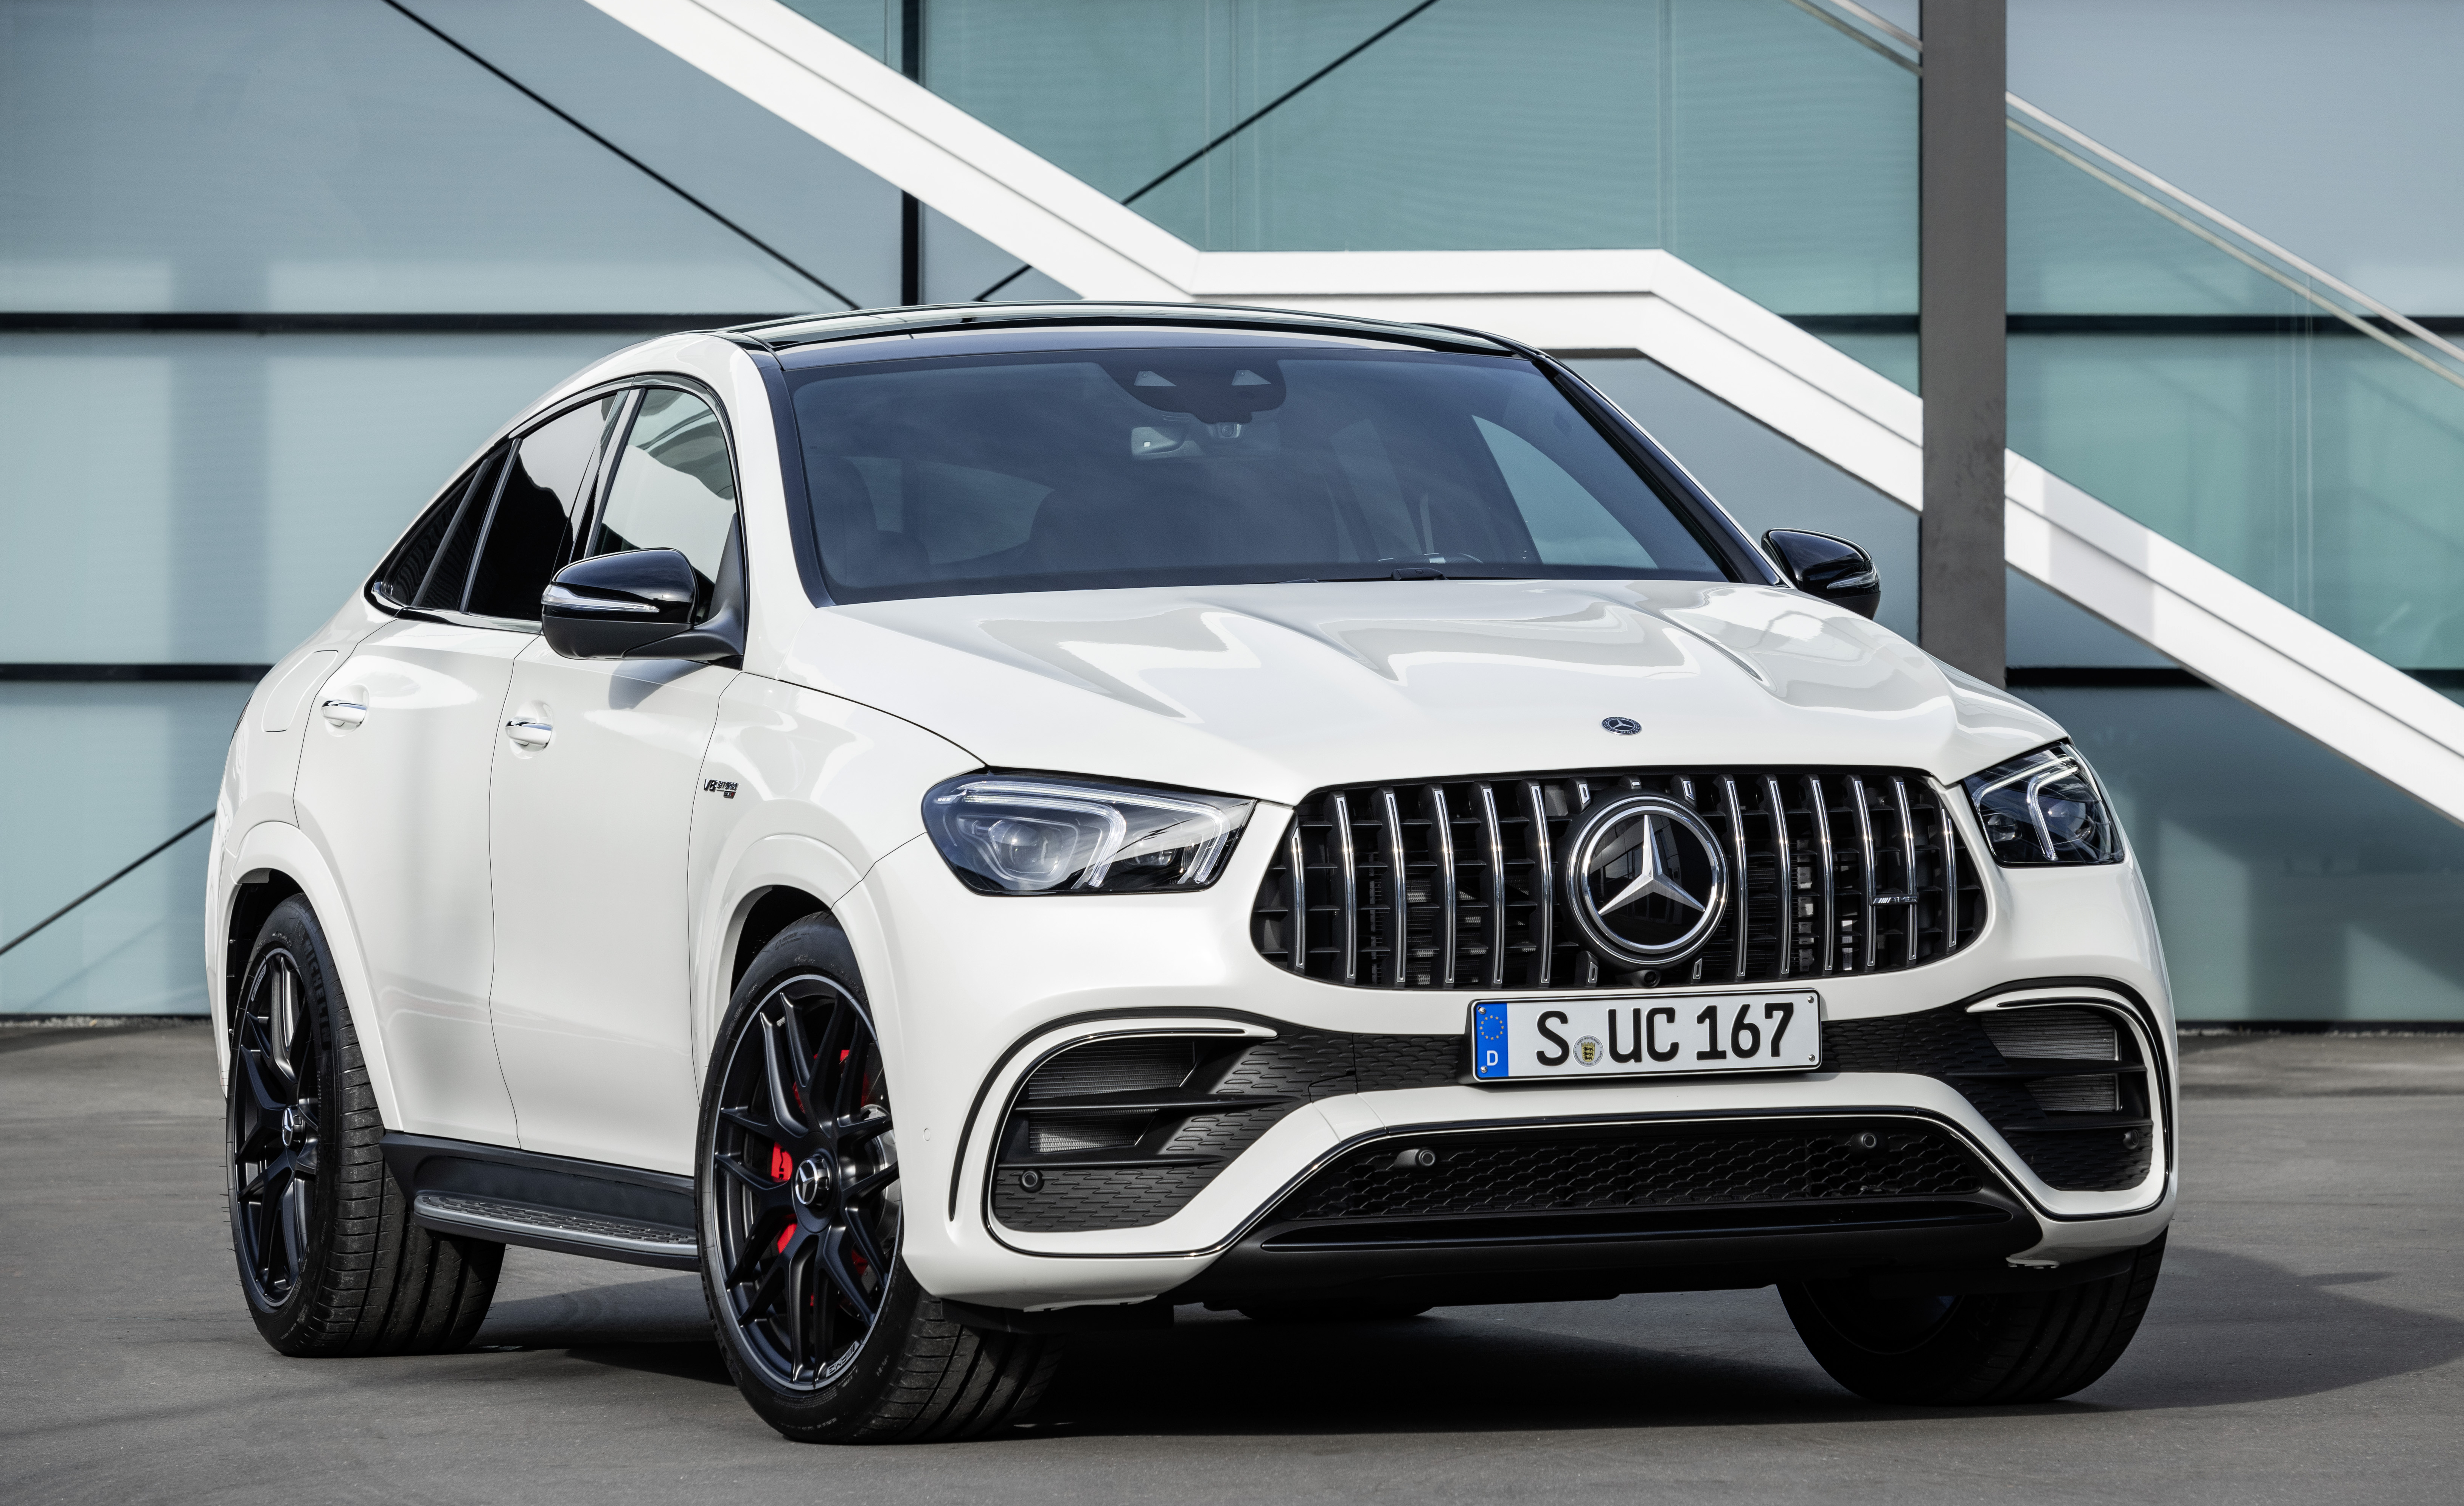 3 Mercedes-AMG GLE 3 3MATIC+ Coupé Photo Gallery and